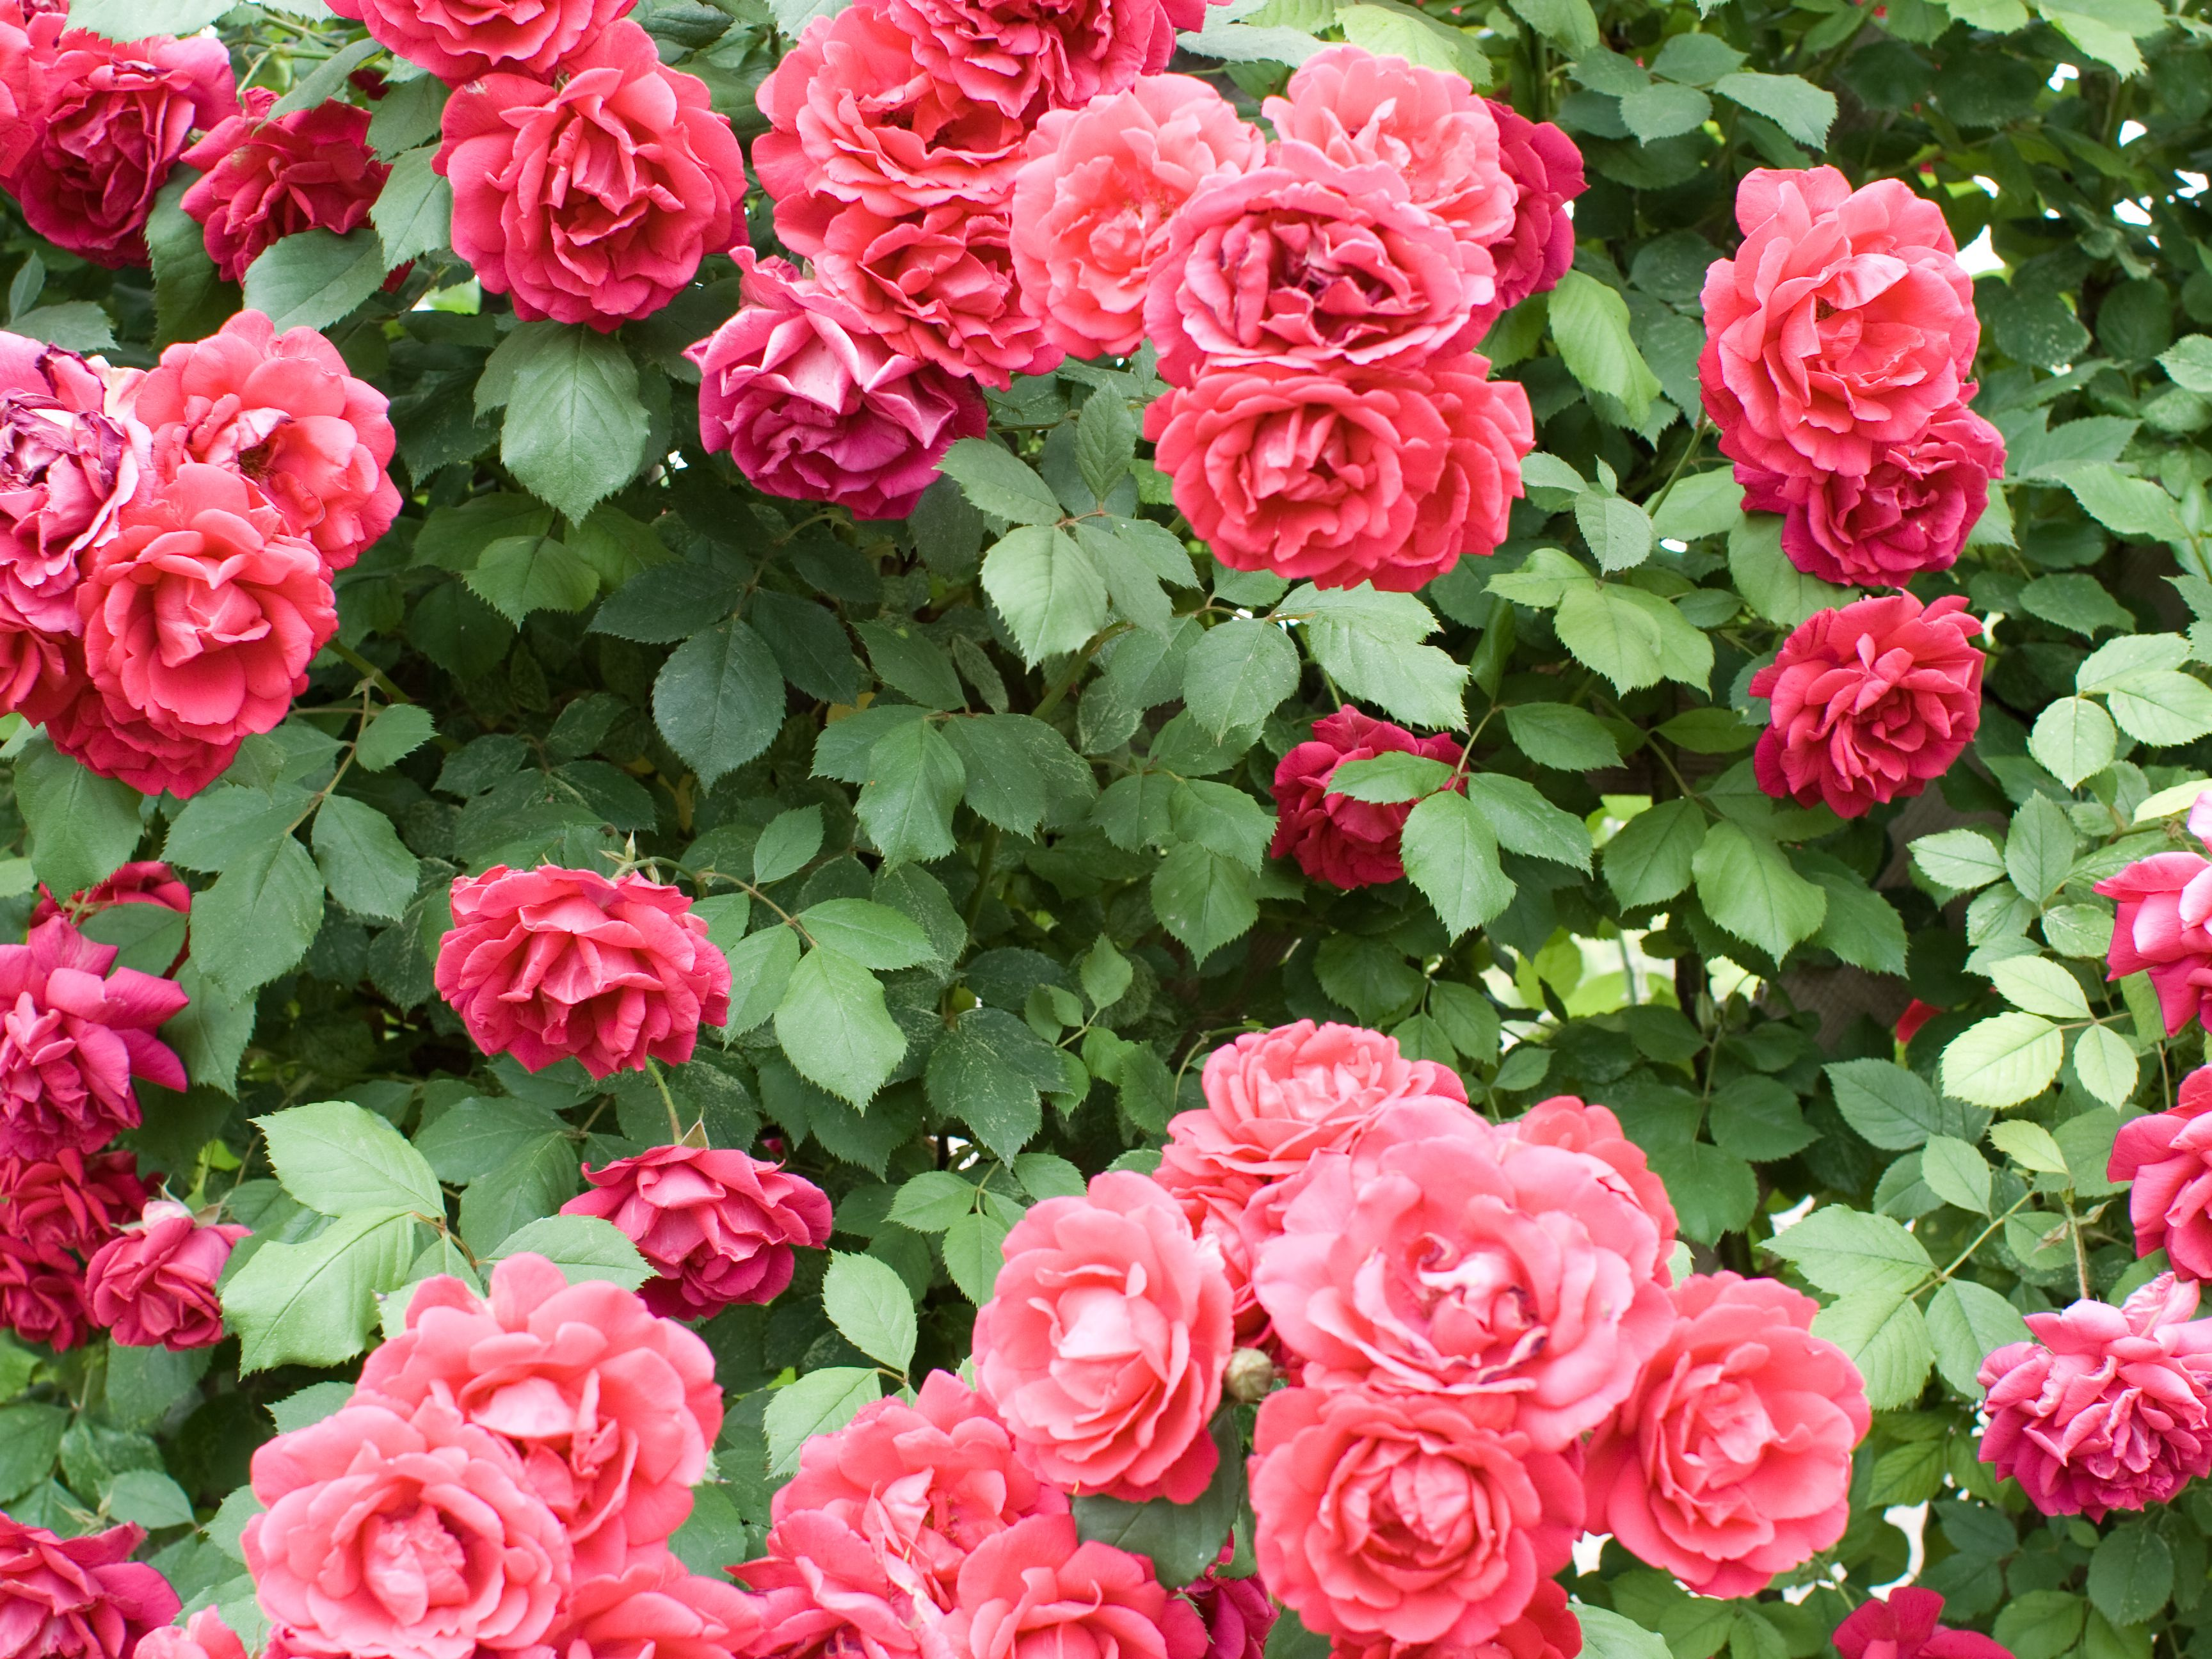 How To Care For Your Roses In Spring